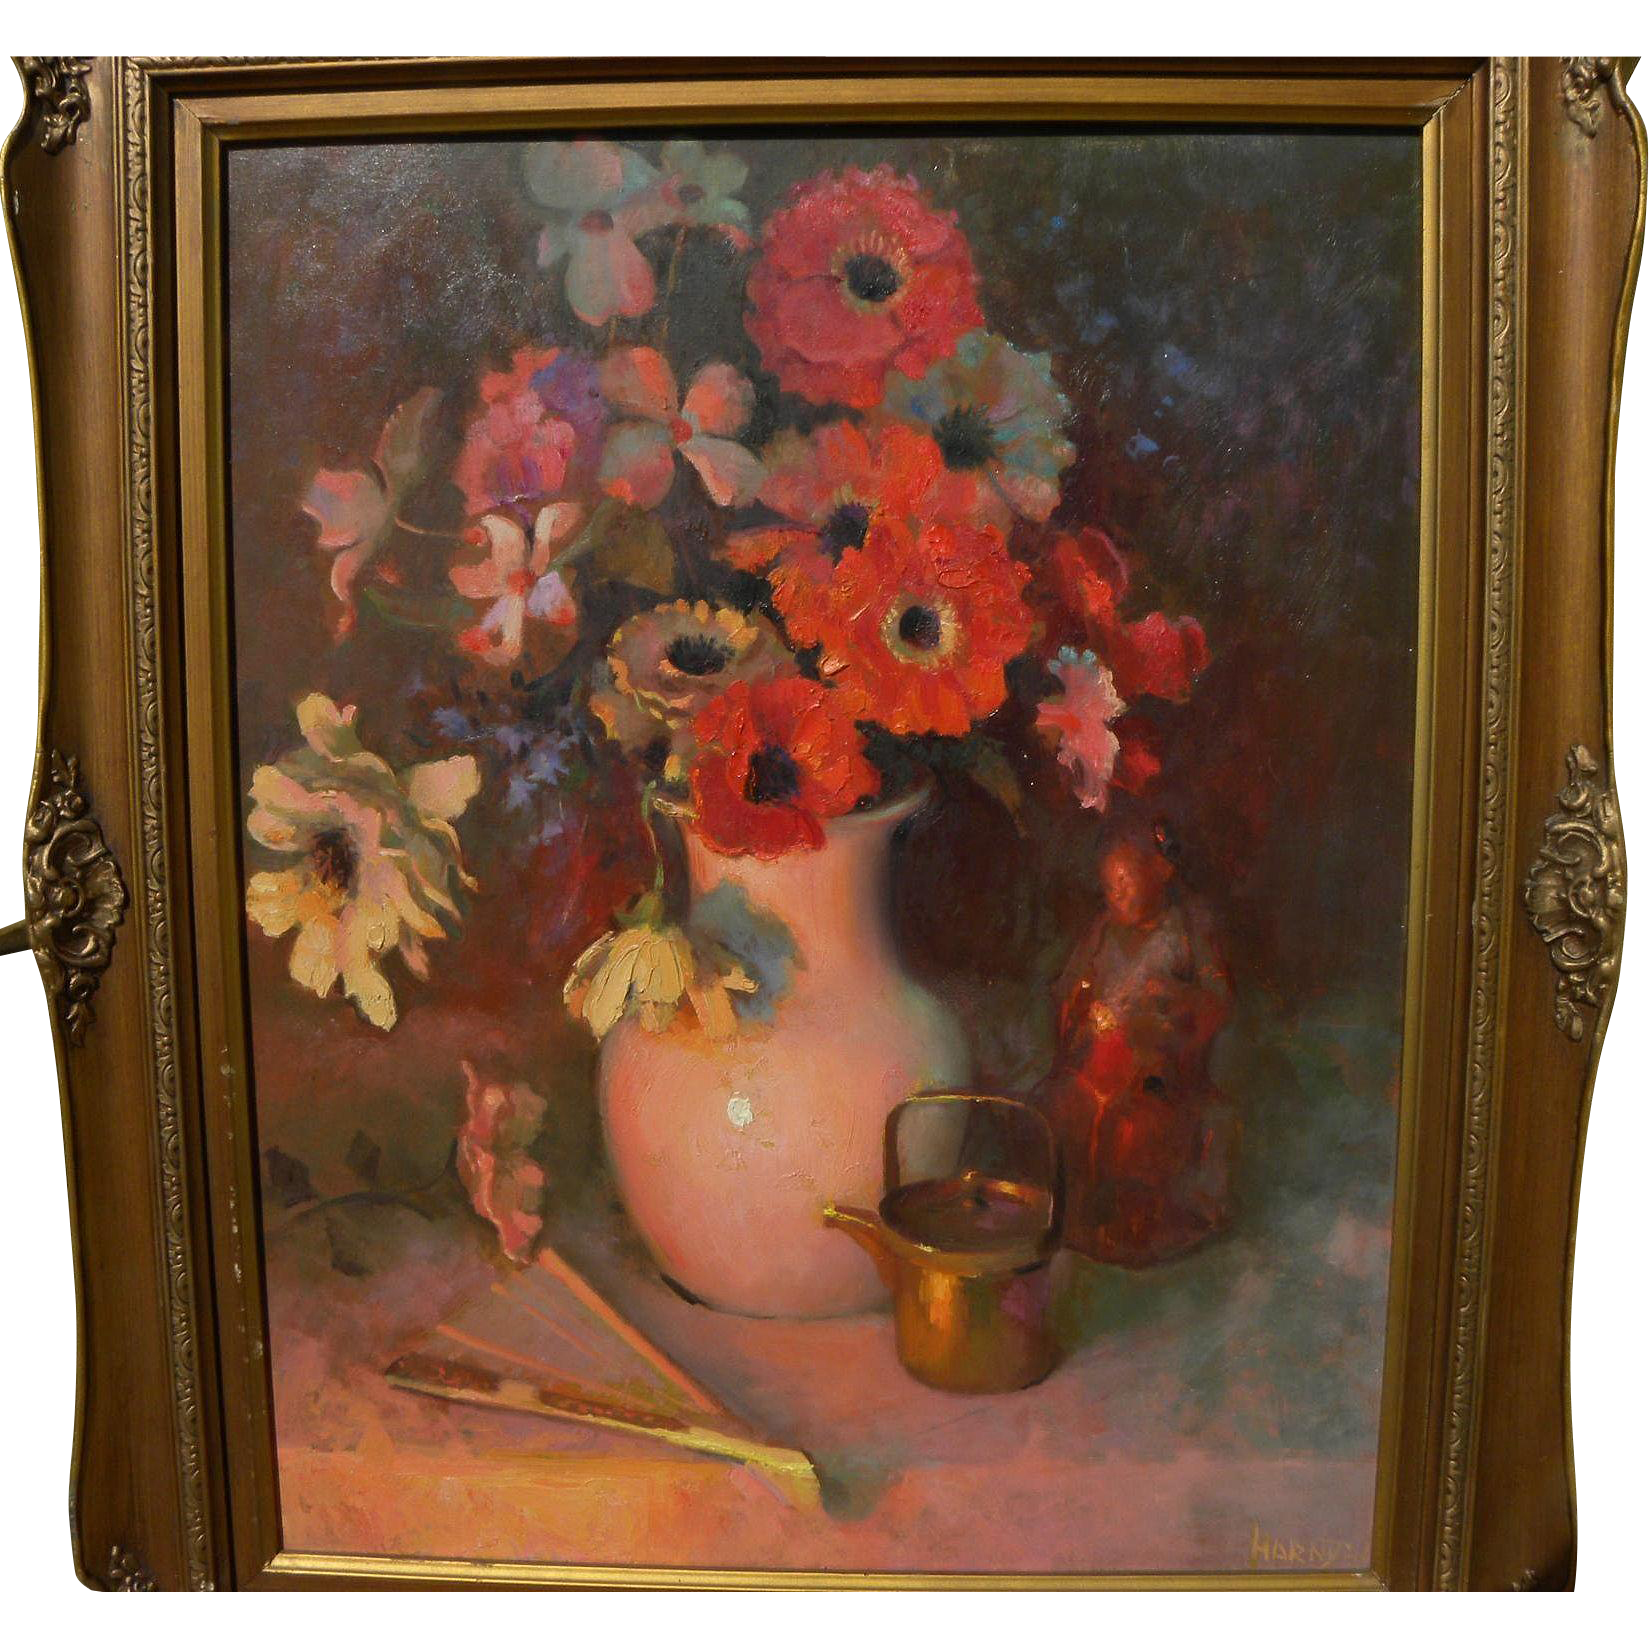 WILLIAM HARNDEN (1920-1983) American impressionist floral still life painting circa 1950's